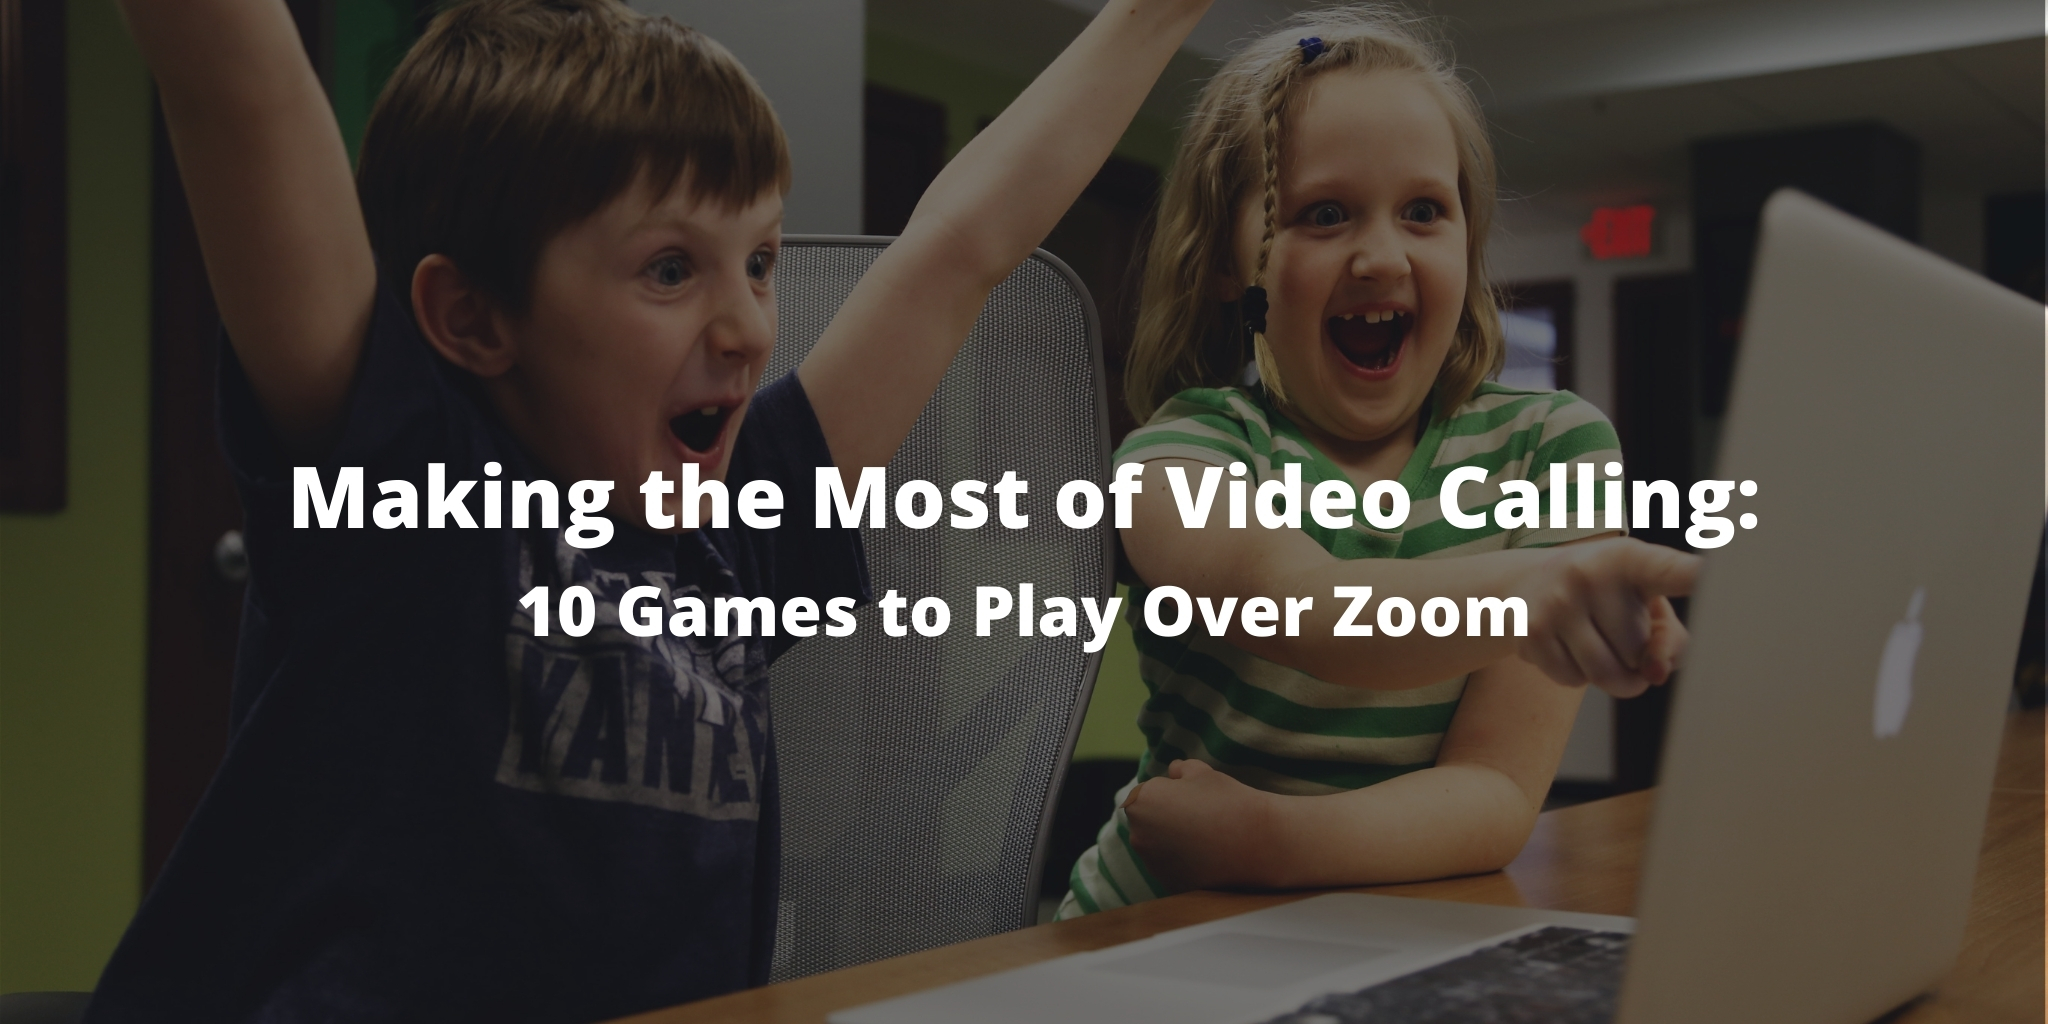 Making the Most of Video Calling: 10 Games to Play Over Zoom